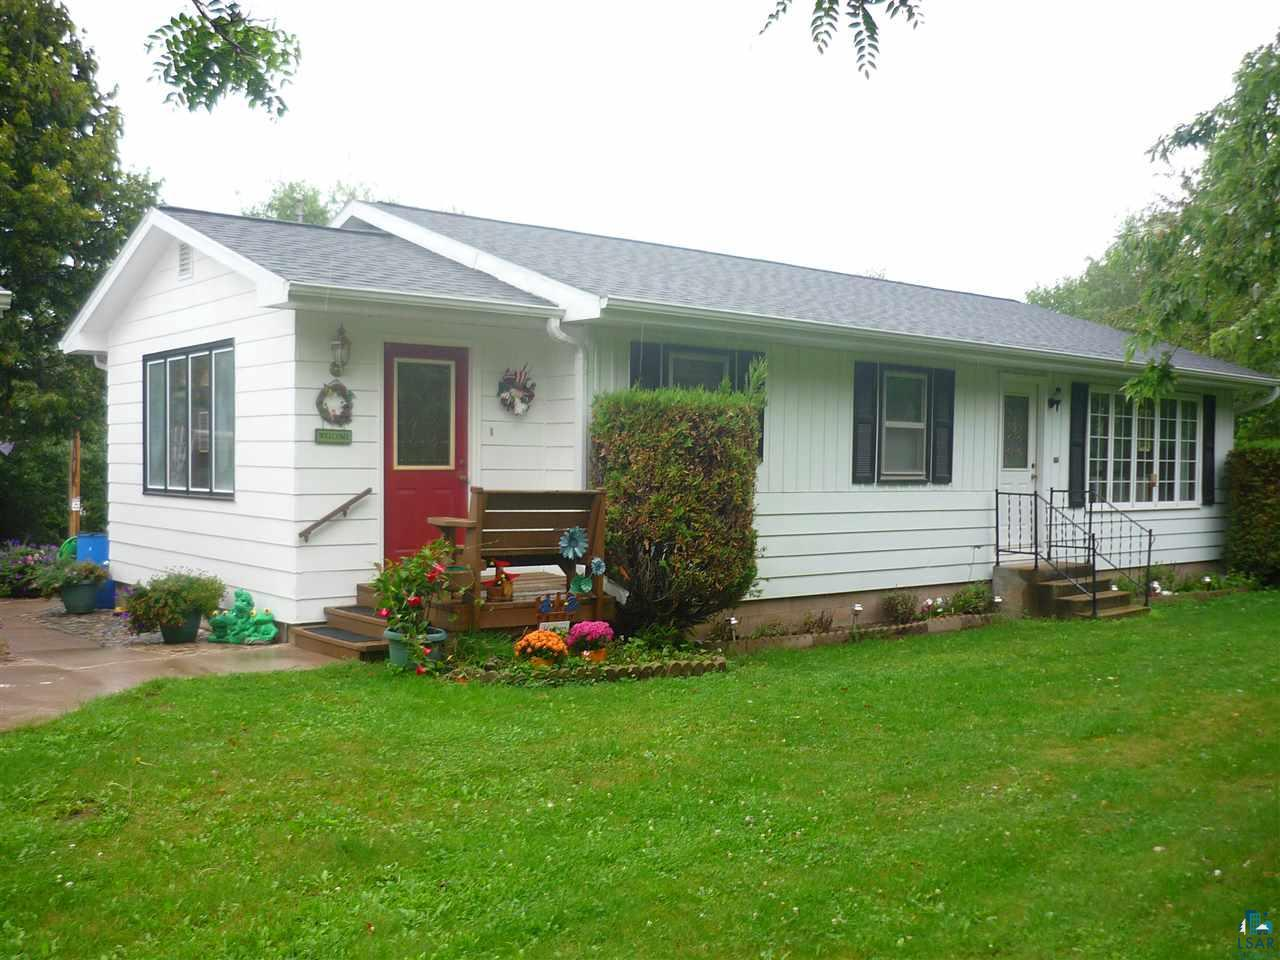 Solidly built and well maintained ranch style home with 3 bedrooms on the main level and another room in the finished basement that is currently used as an office that was a 4th bedroom.  The eat-in kitchen has custom cabinets and built in hutches and the lower level is finished with large family room, office/bedroom, sauna, bath and lots of storage.  There is hardwood maple floors in living room and bedrooms on the main floor underneath the carpeting.  28x36 garage with heated shop, 8x36 deck, man made pond and 3 season gazebo for backyard enjoyment.  This property has direct access to the corridor for recreational enjoyment and is close to Ashland for convenience.